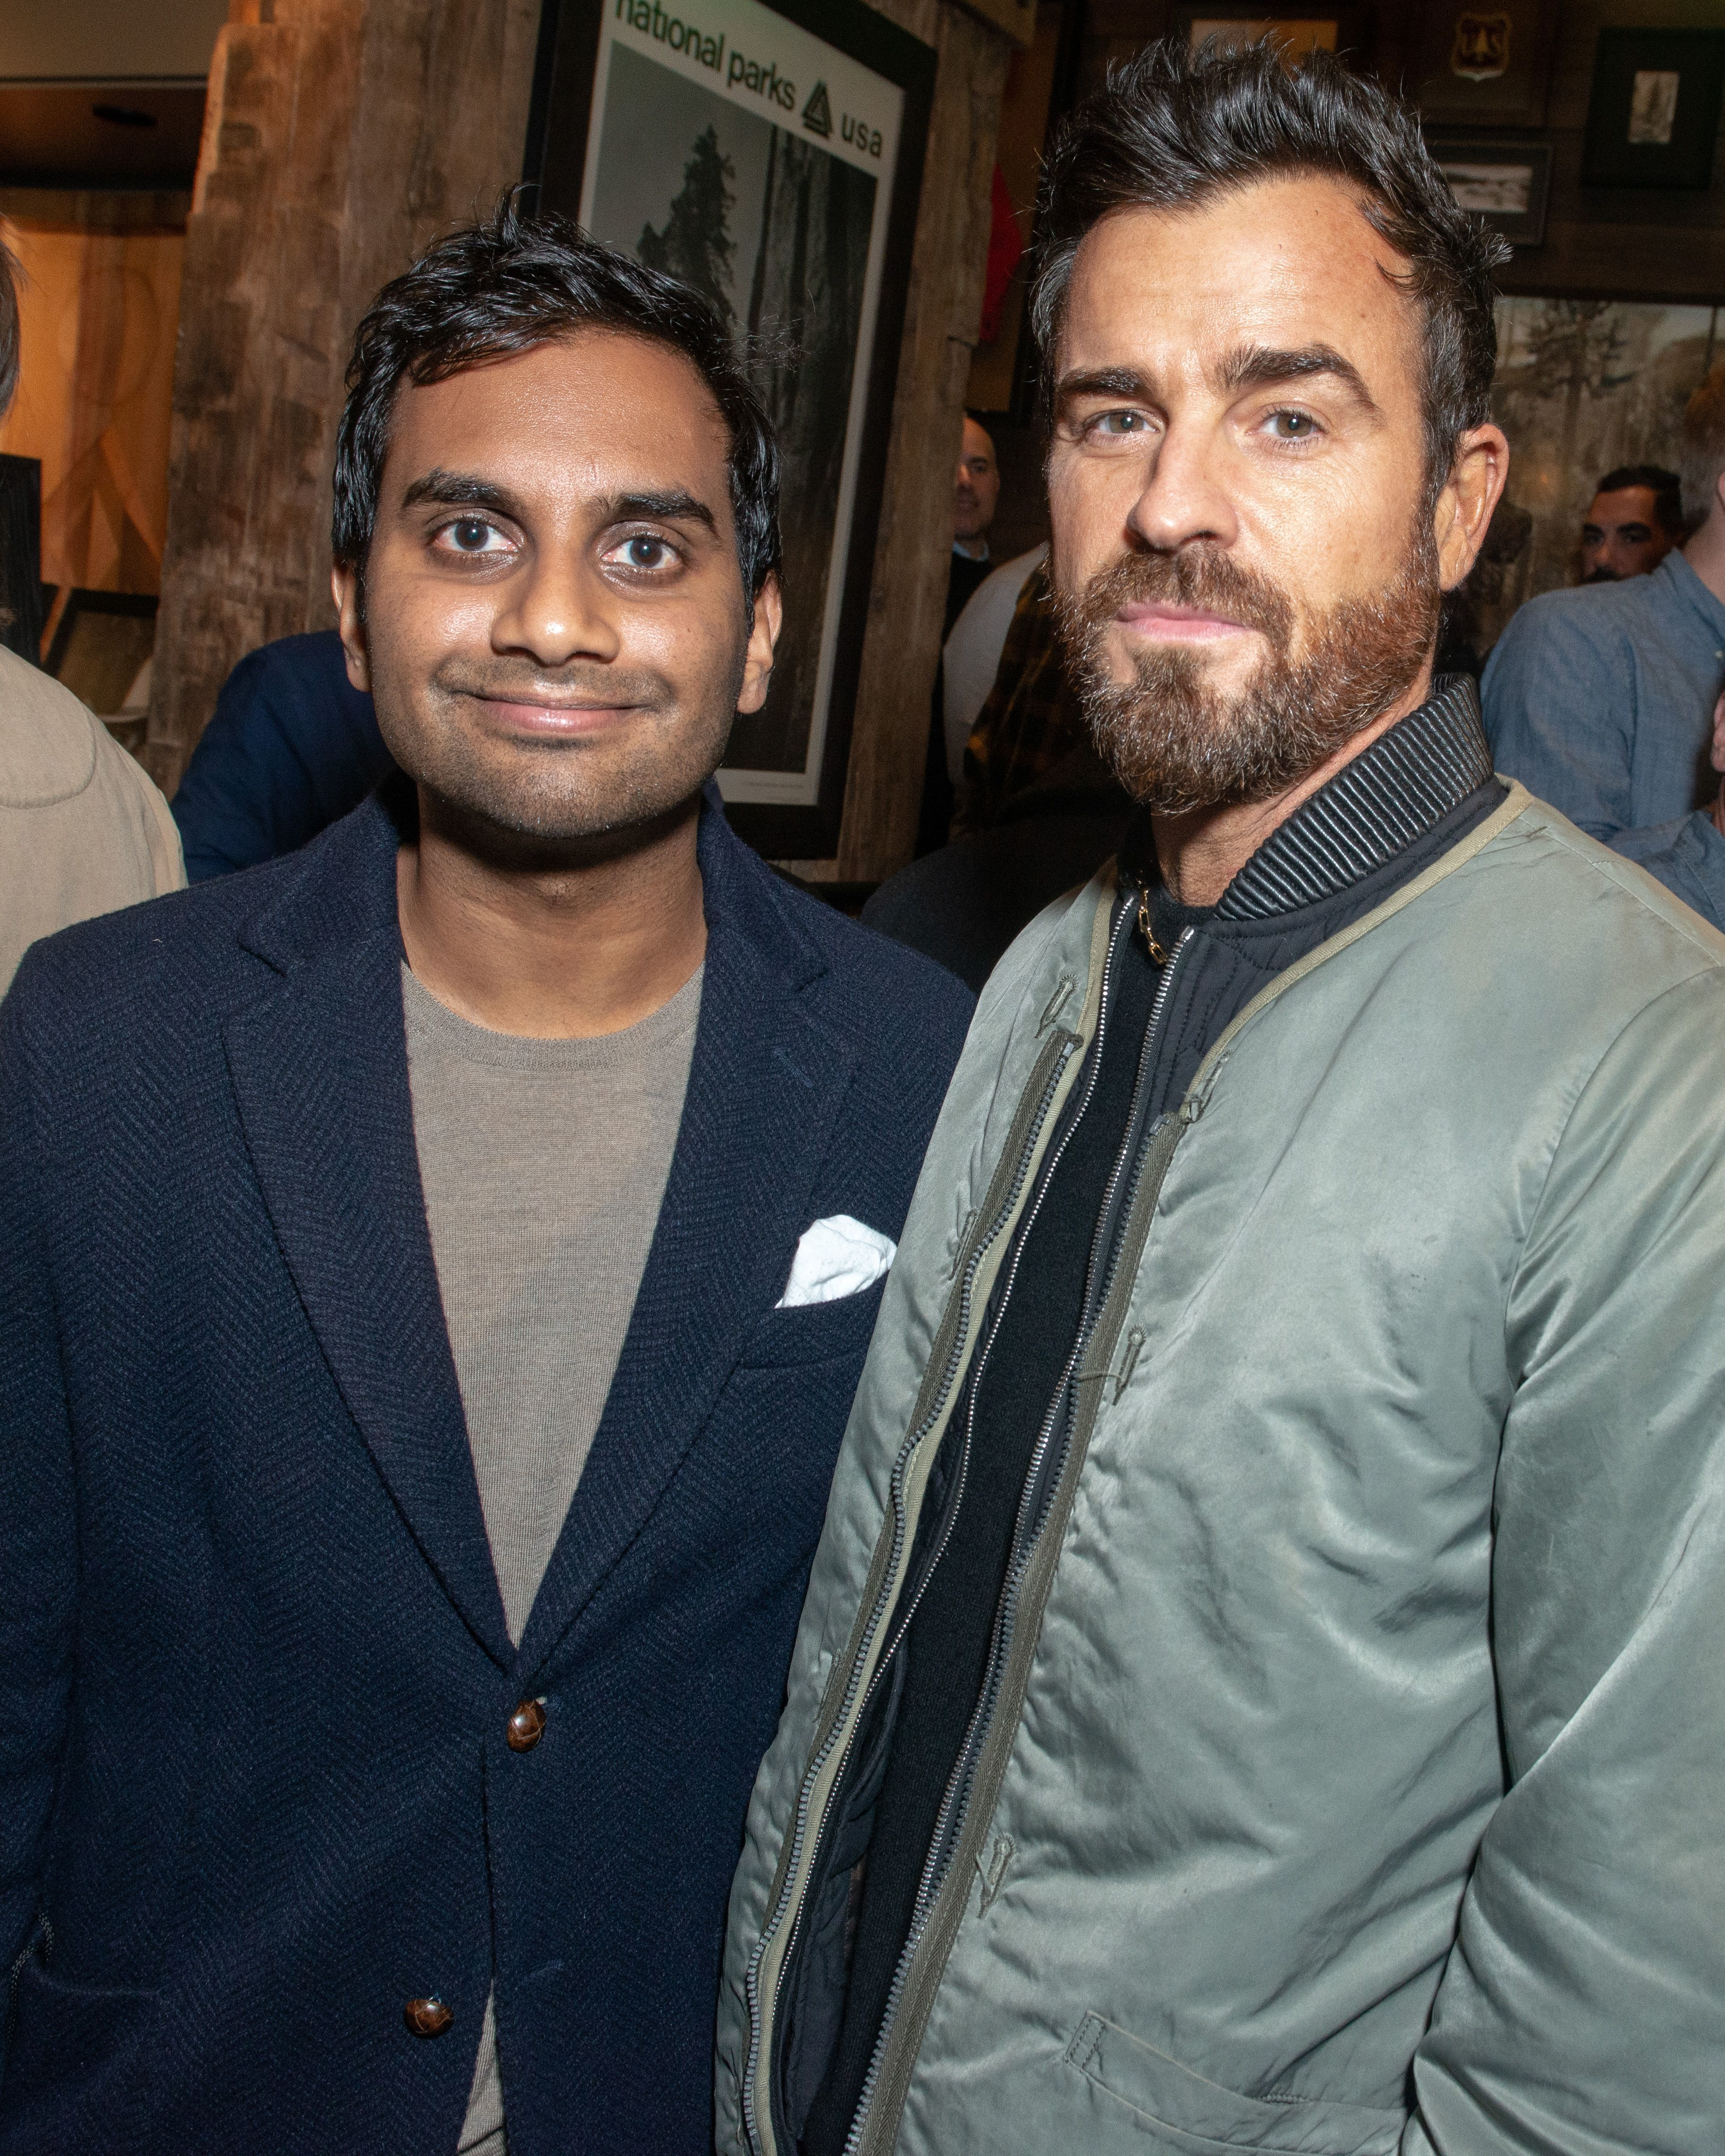 Aziz Ansari and Justin Theroux attend the Filson flagship store opening party in New York City on Nov. 13, 2018.